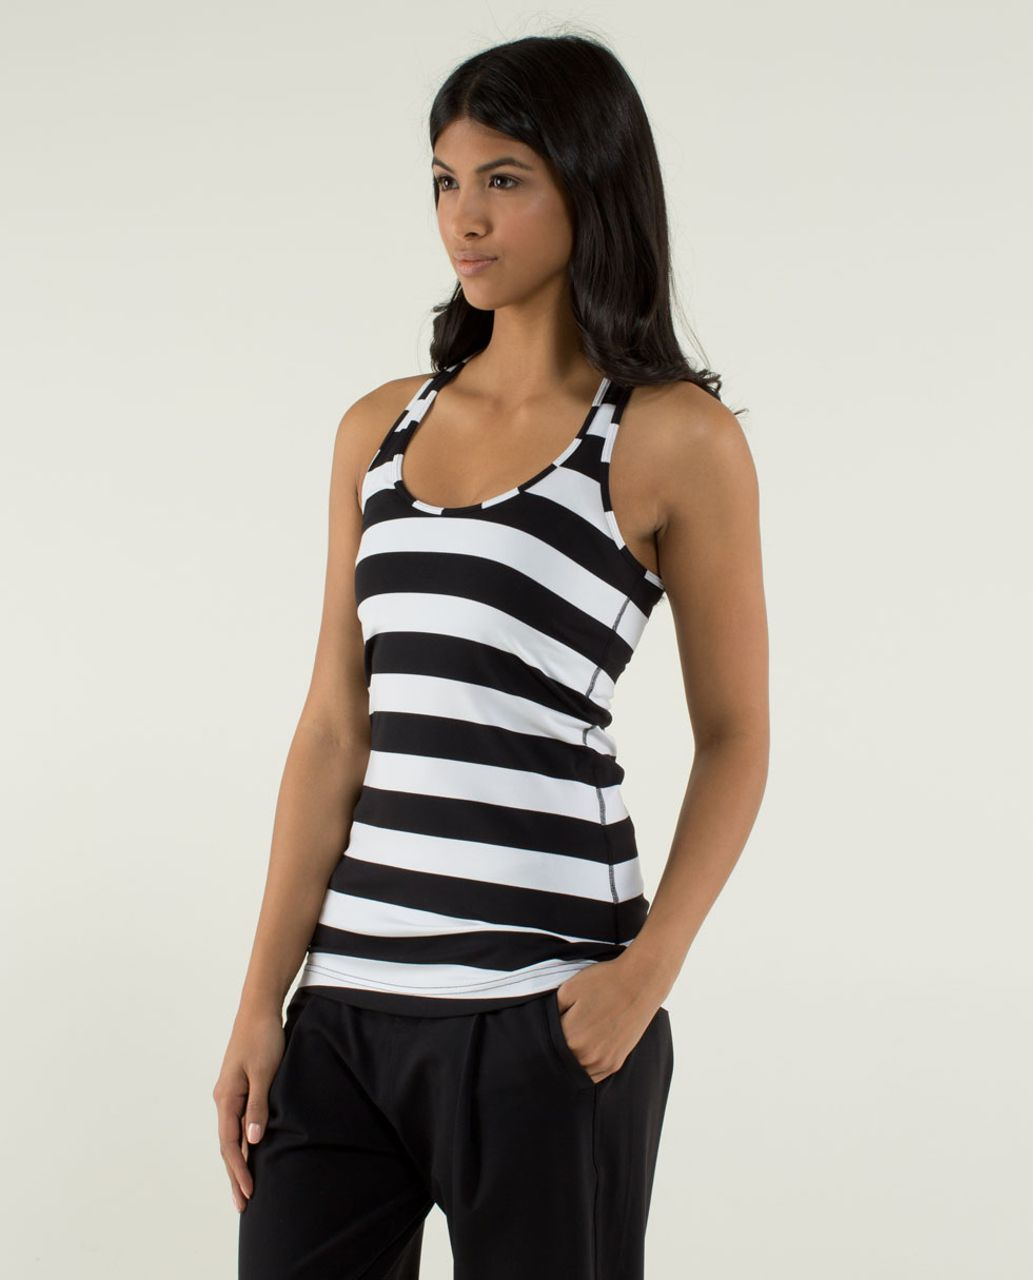 Lululemon Cool Racerback - Straightup Stripe Black White